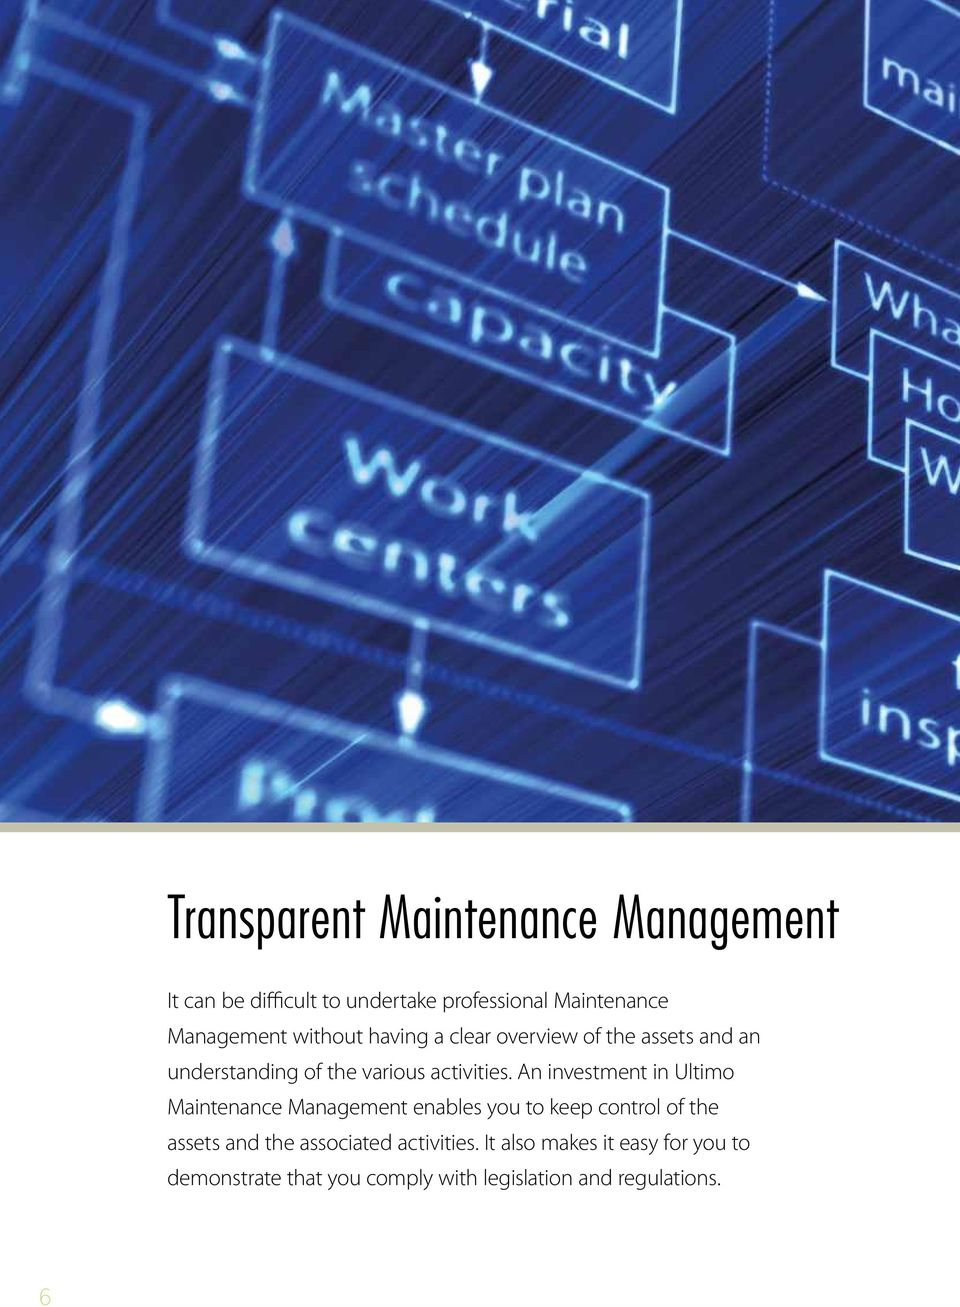 An investment in Ultimo Maintenance Management enables you to keep control of the assets and the